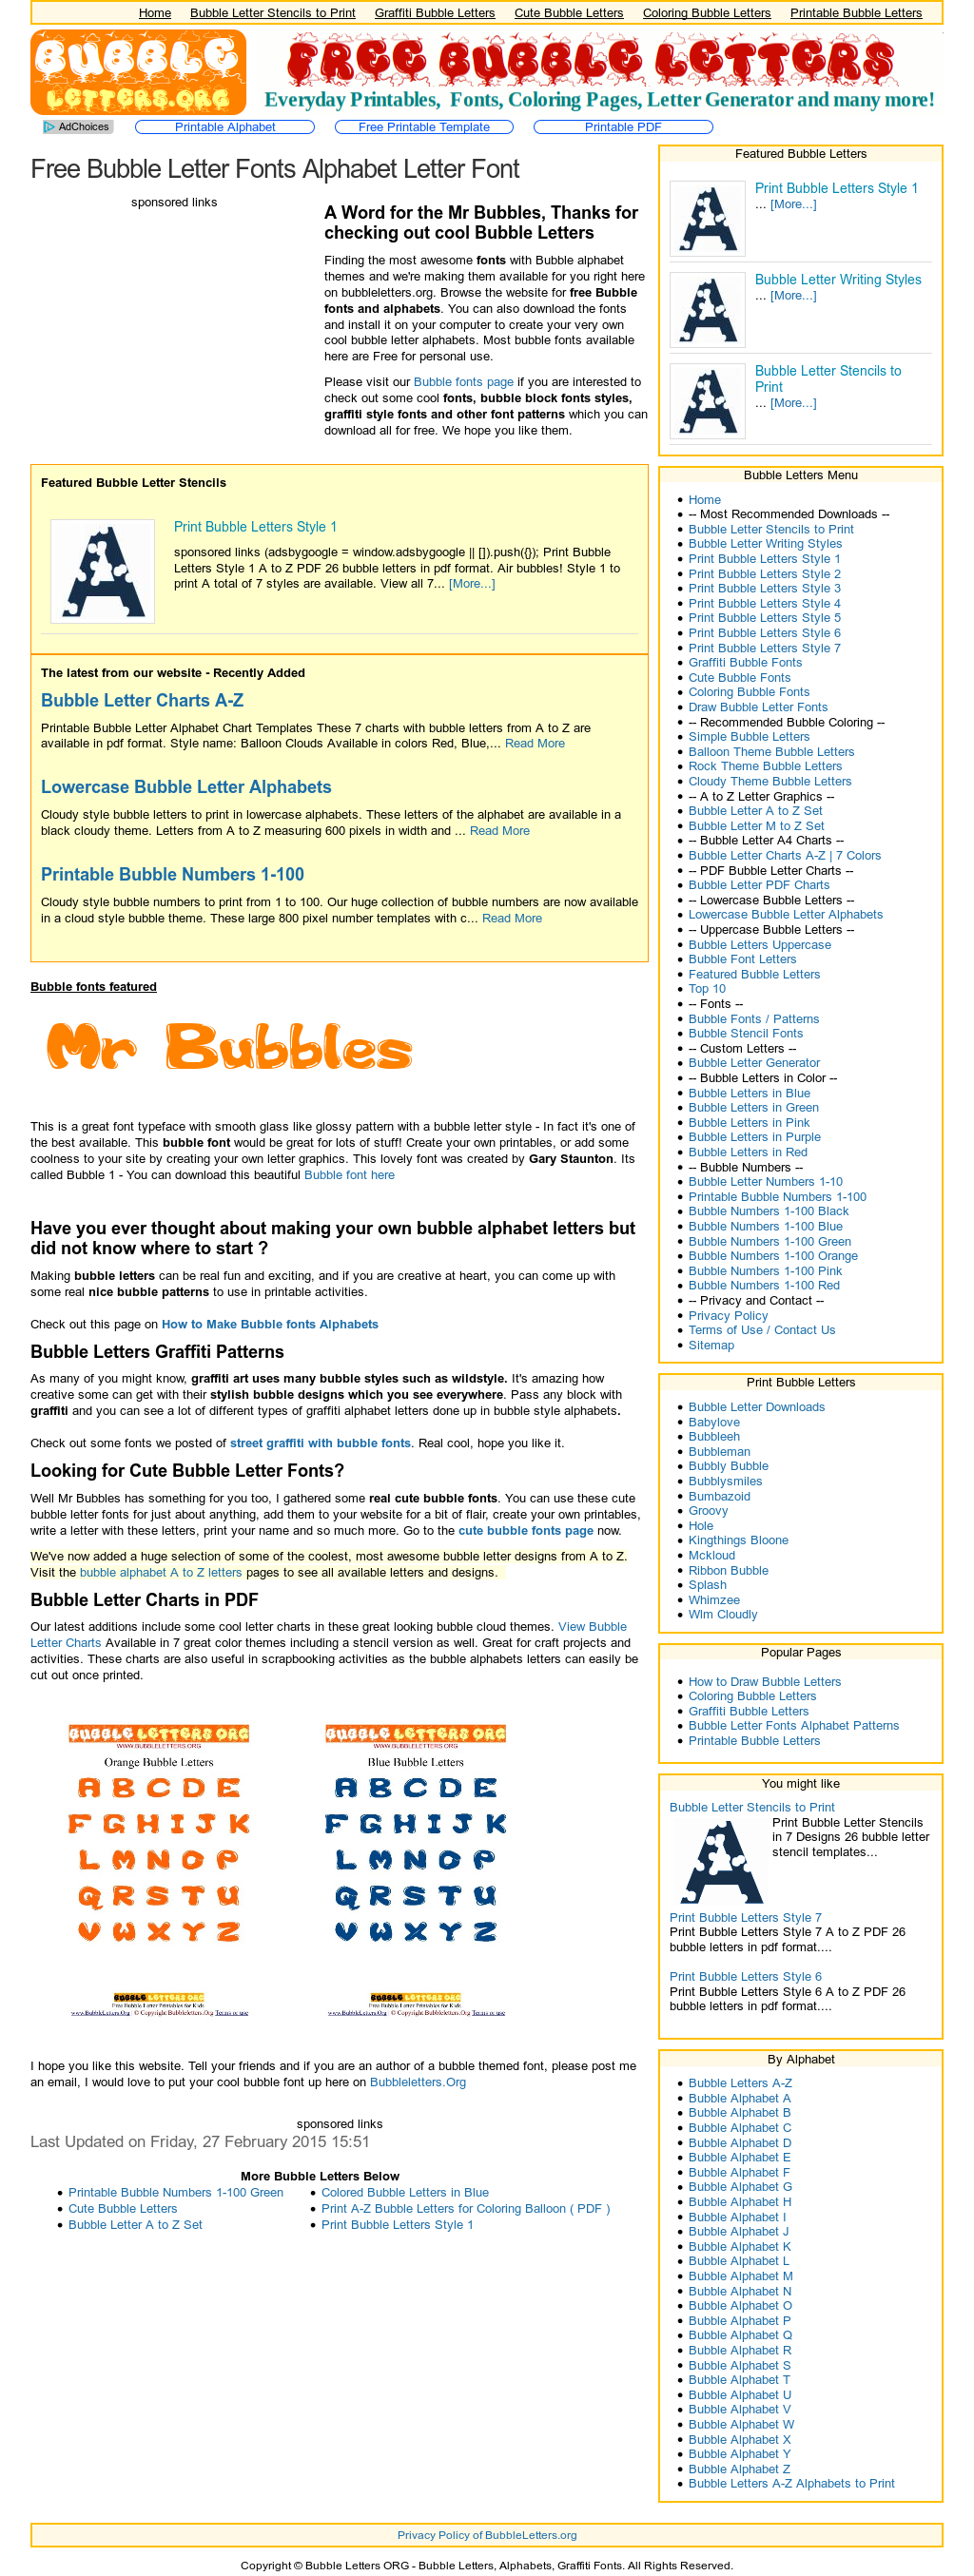 Bubble Letters Org Competitors, Revenue and Employees - Owler